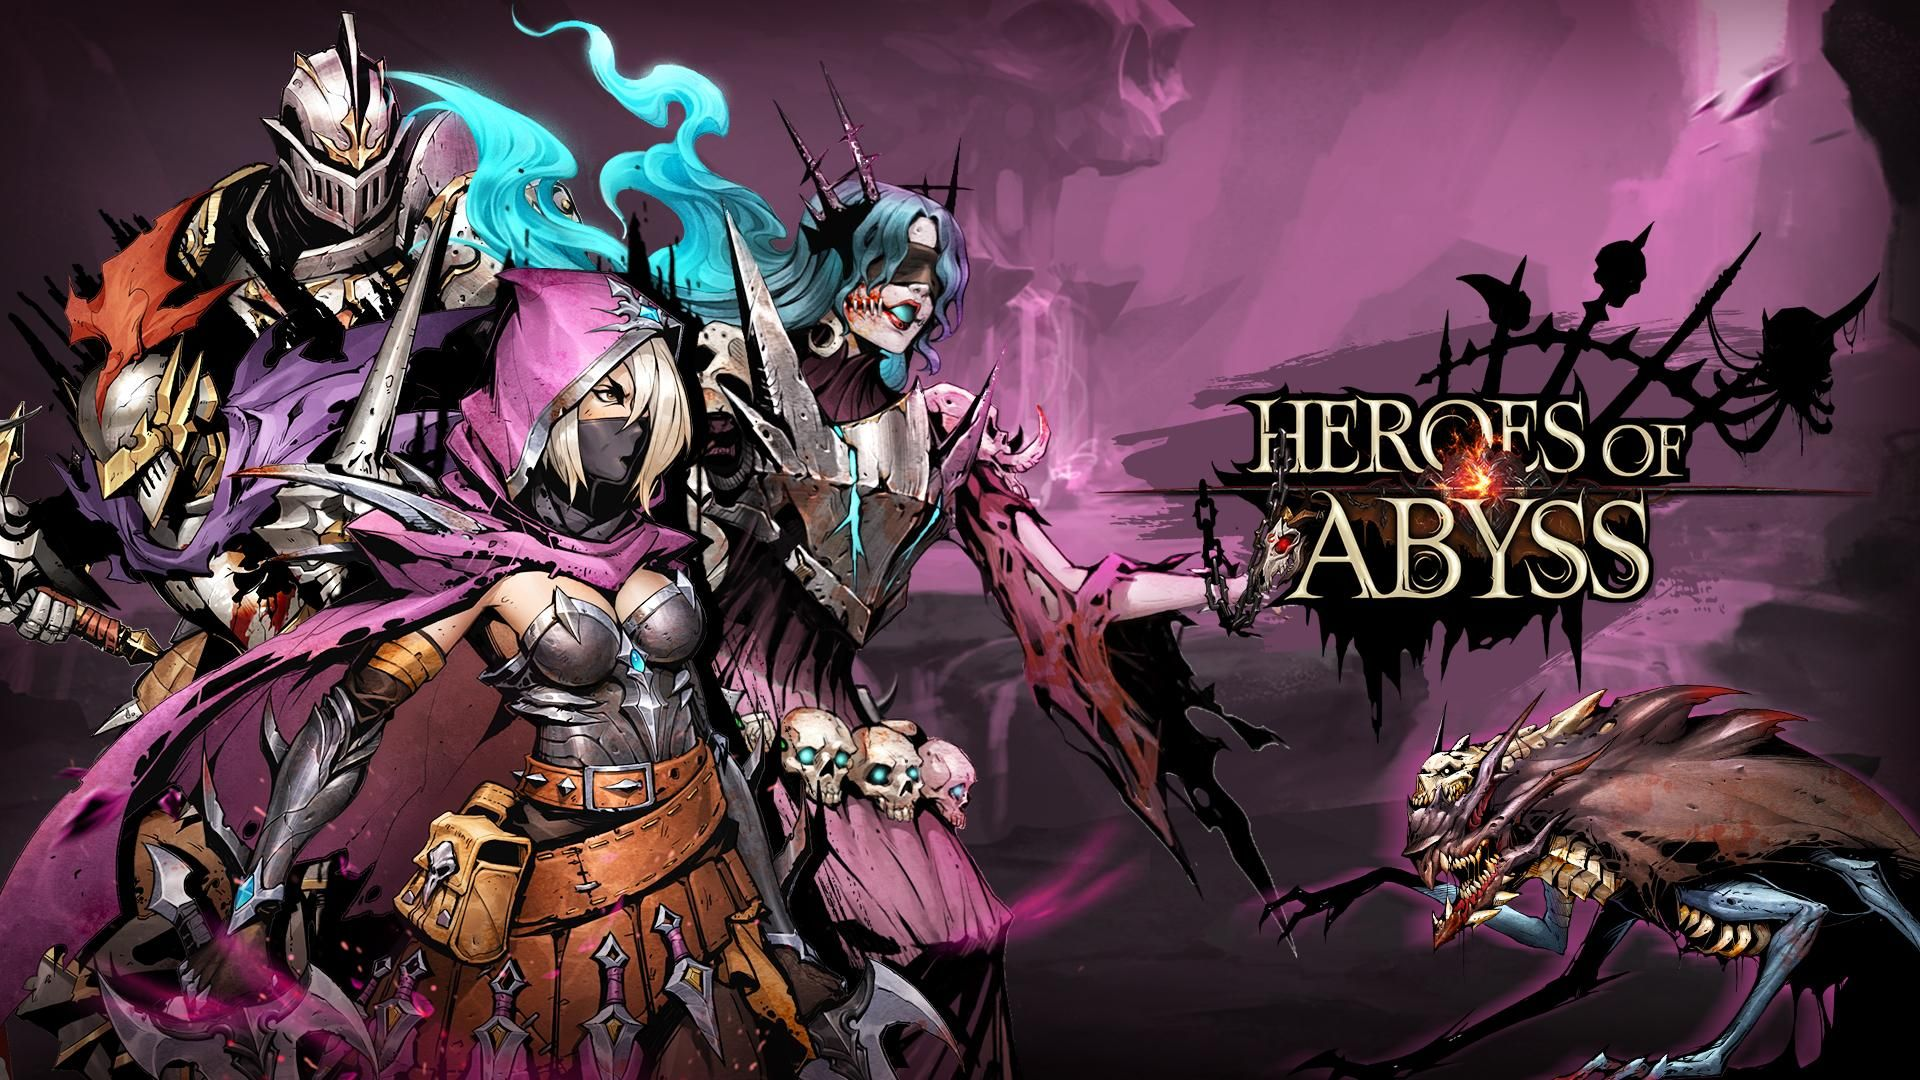 Heroes of Abyss 游戏截图1